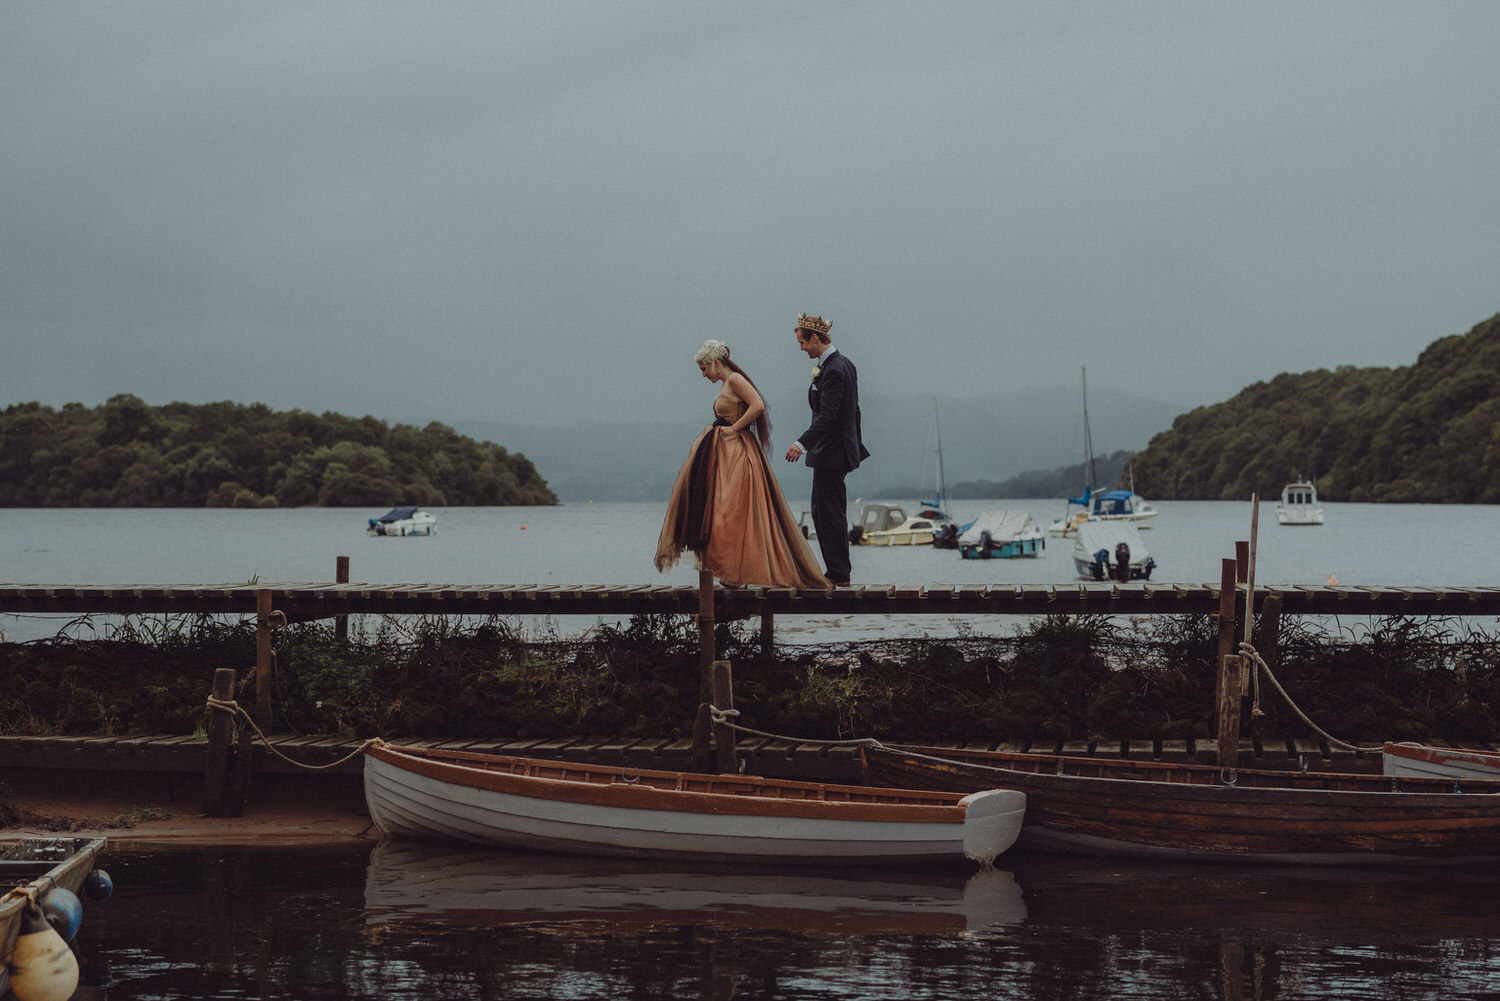 David & Victoria's wedding on Inchcailloch island, Loch Lomond a